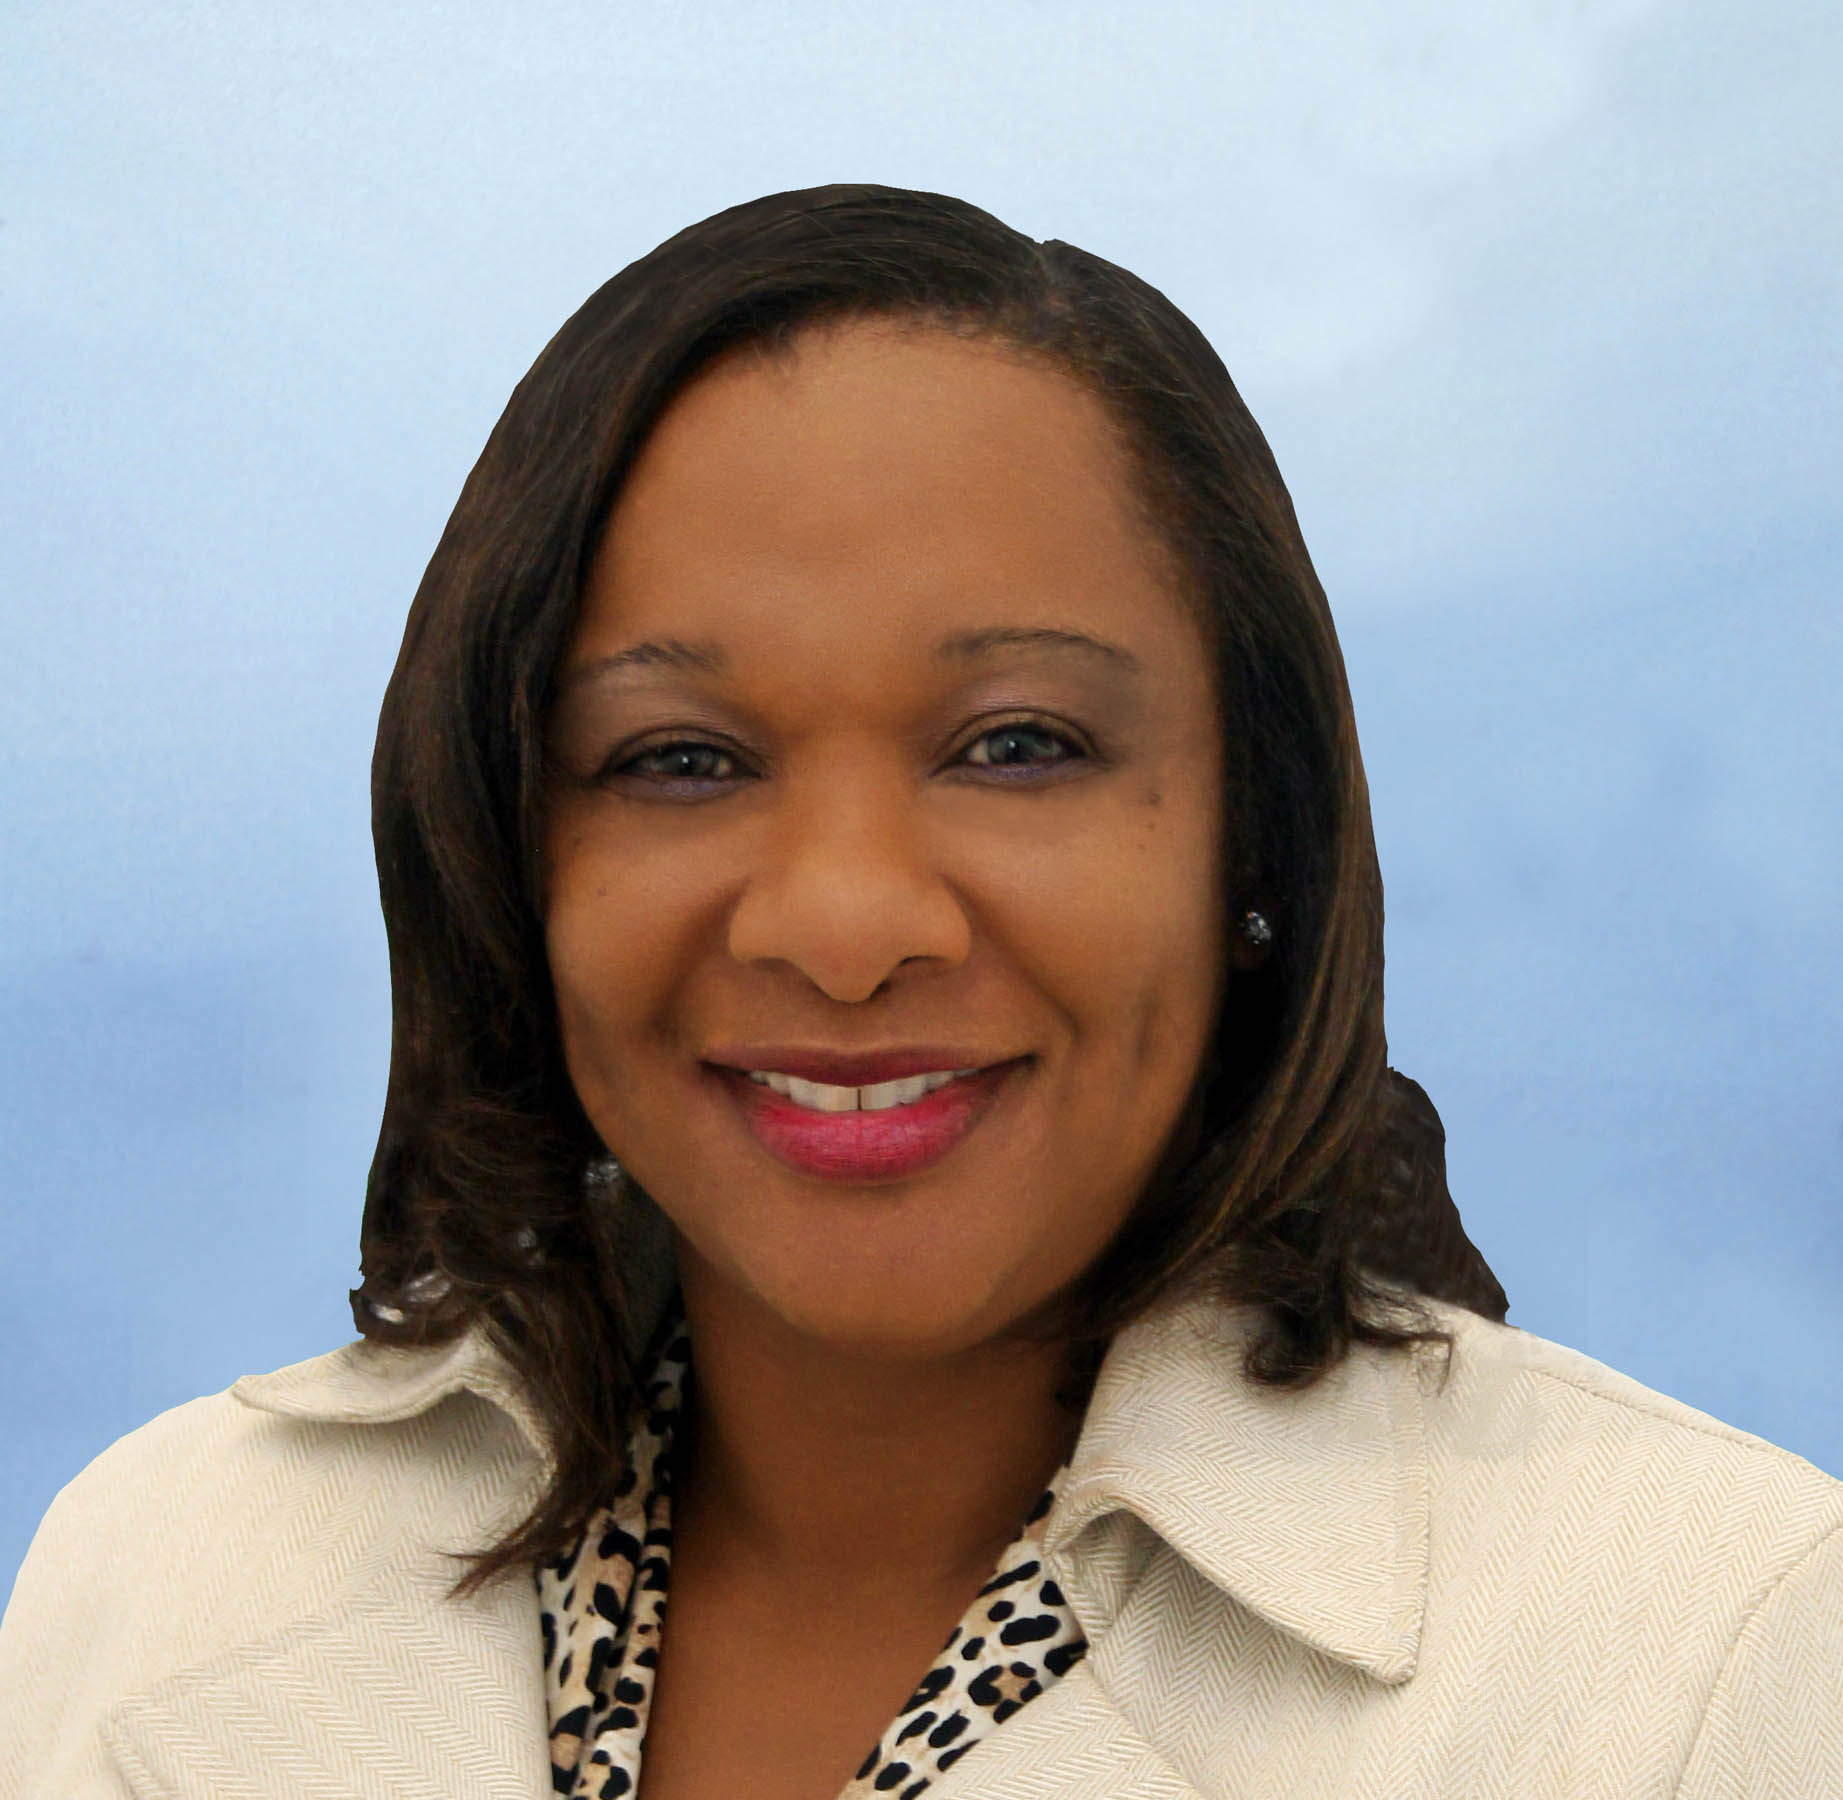 Sharlene Cartwright Robinson